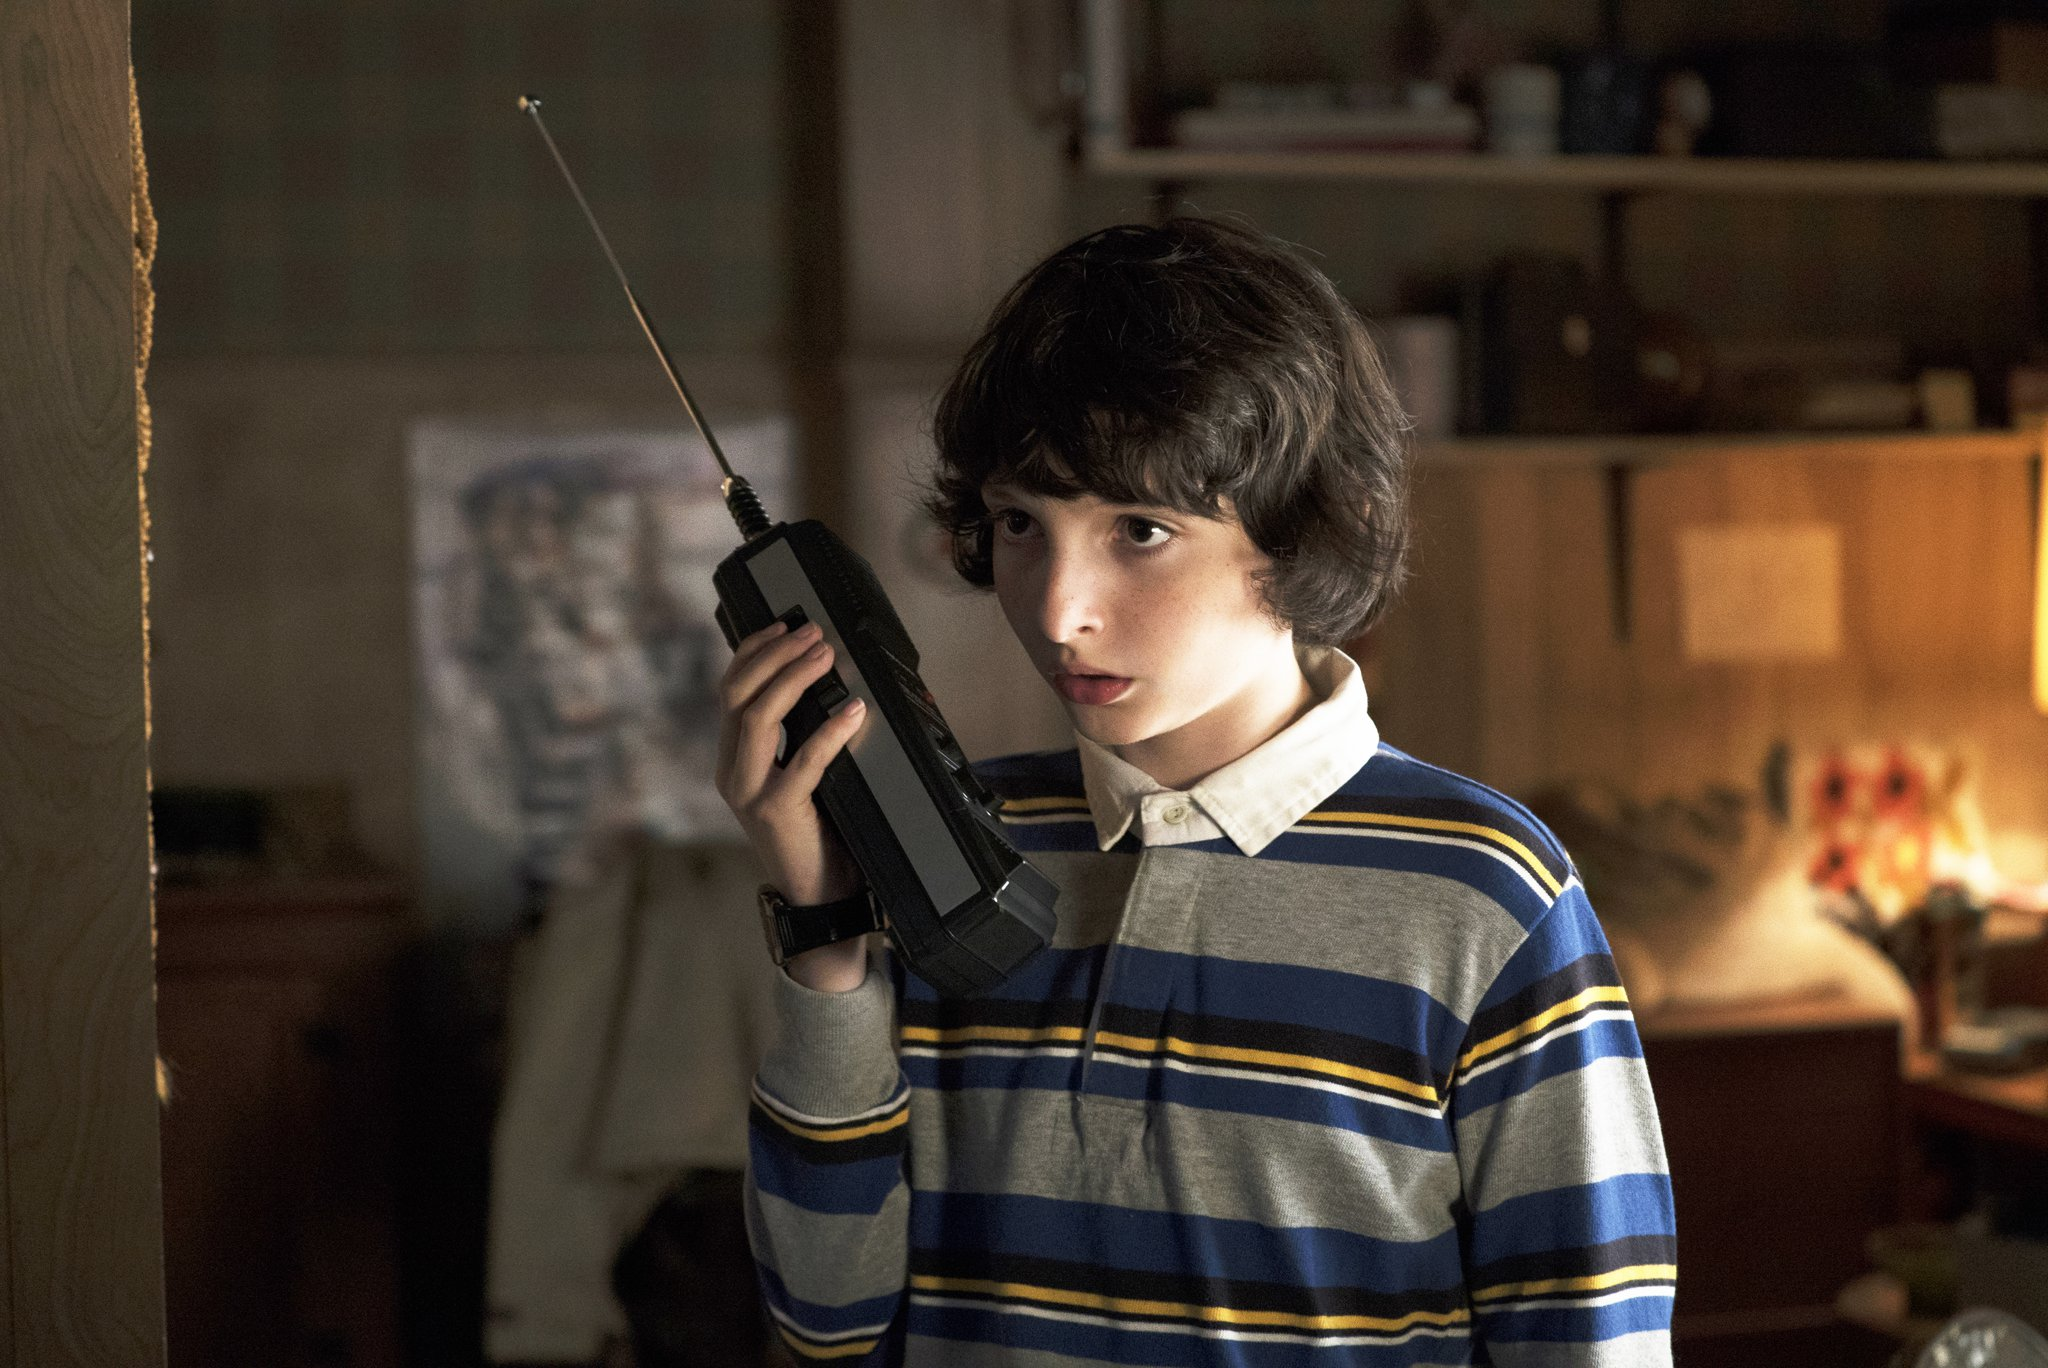 Stranger-Things-phone.jpg